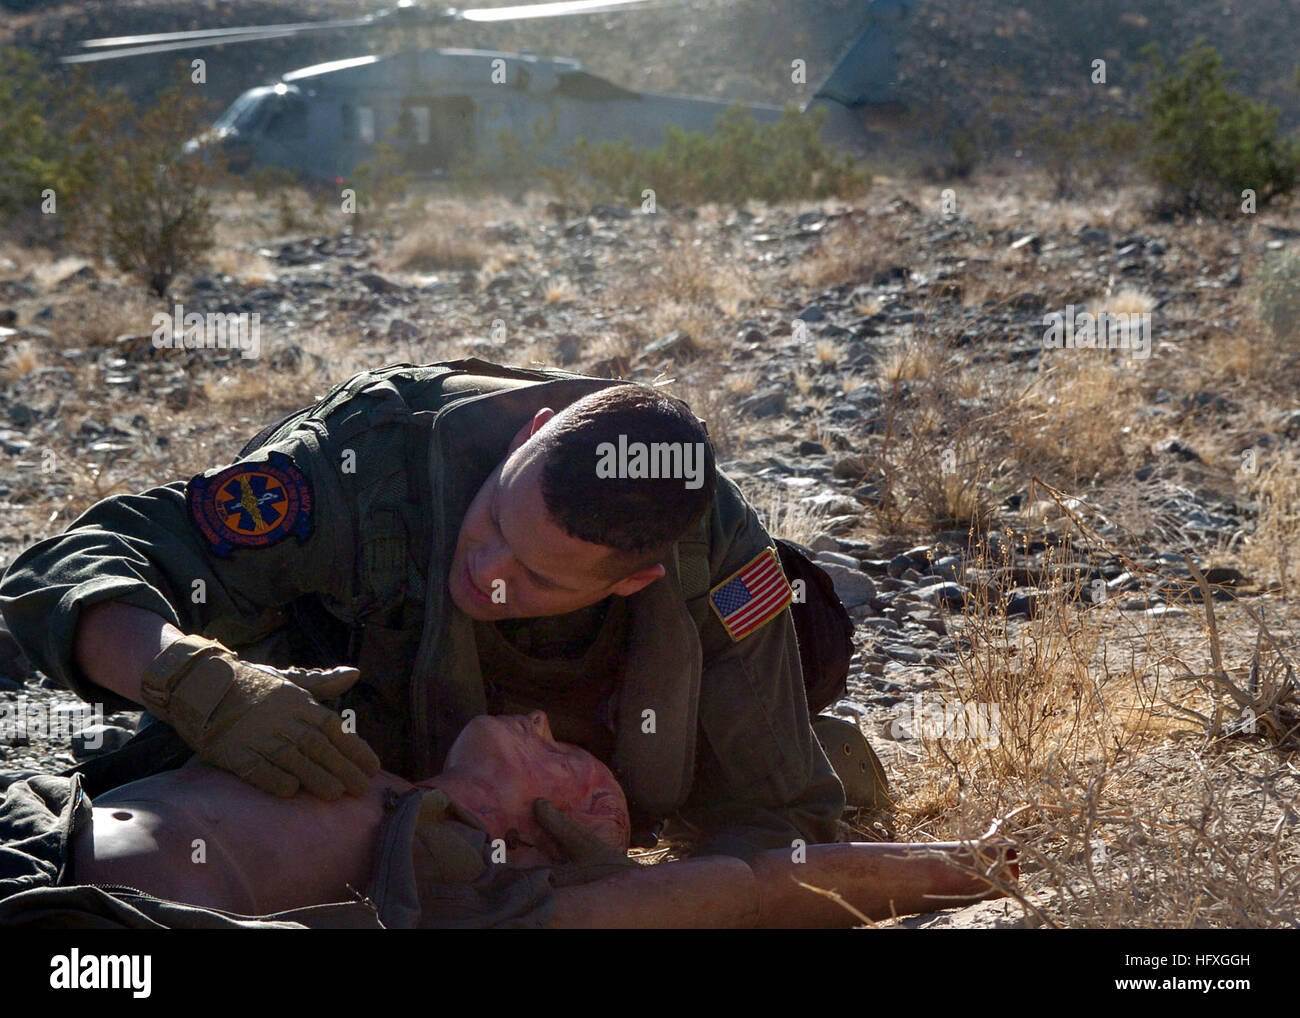 051129-N-6901L-127 El Centro, Calif. (Nov. 29, 2005) -  Hospital Corpsman 2nd Class K.J. Griffin, assigned to Helicopter - Stock Image